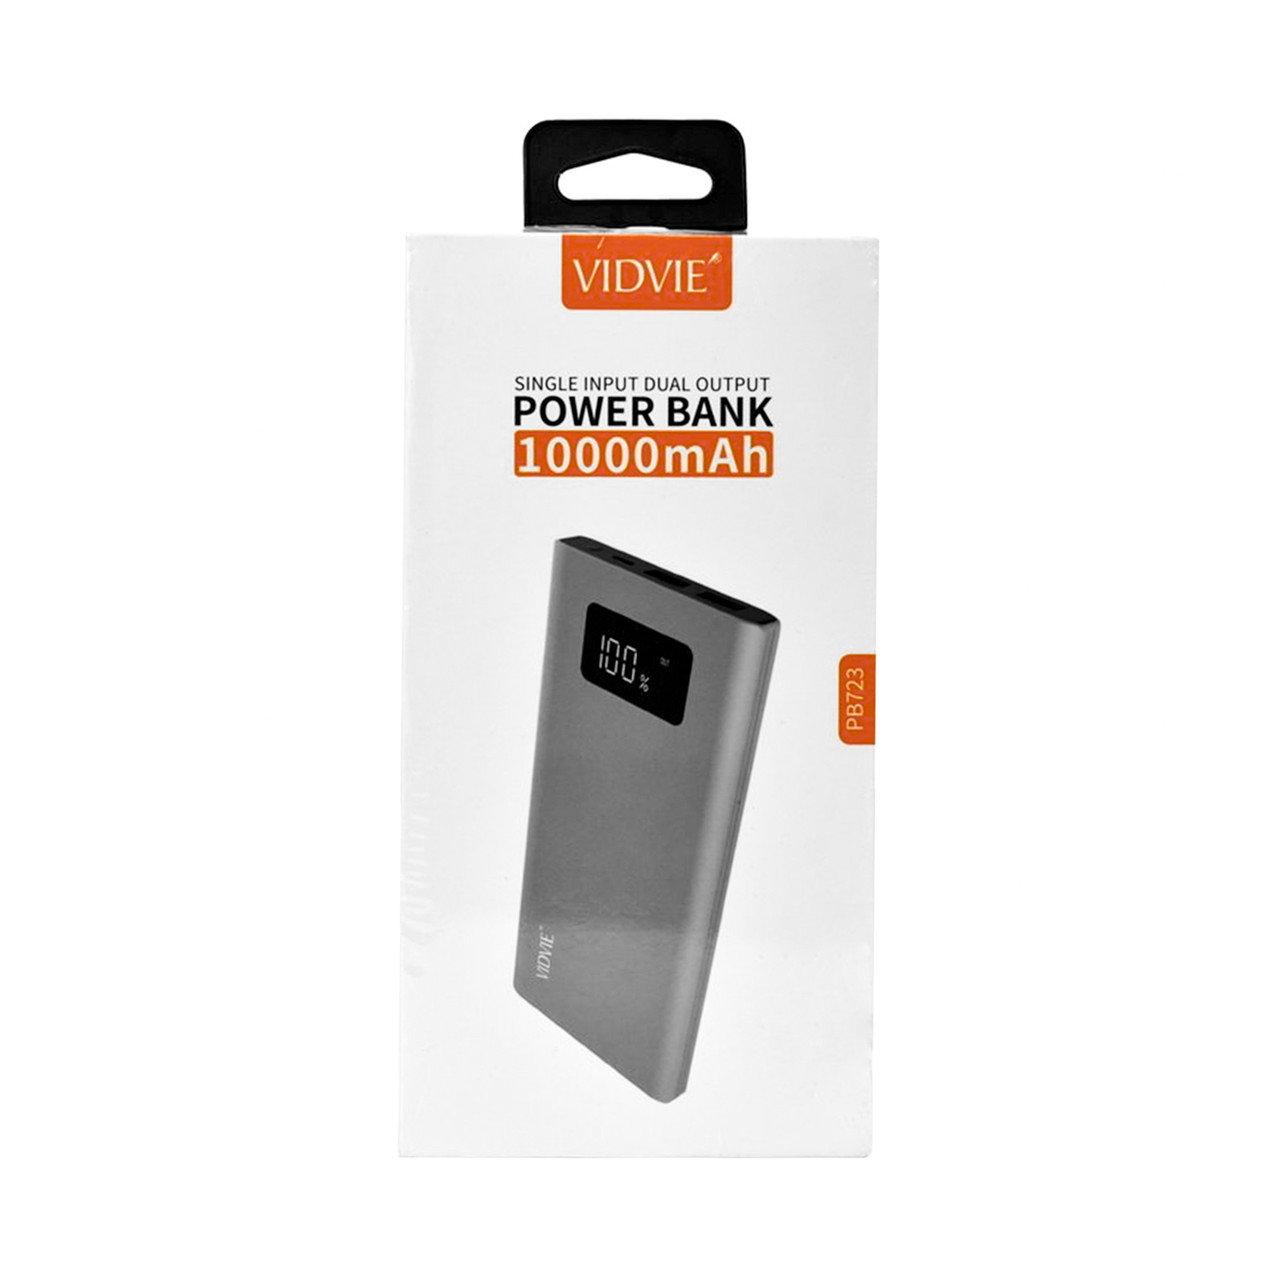 Power bank Vidvie PB723 1000mAh 2XUSB 2.1A Ggay